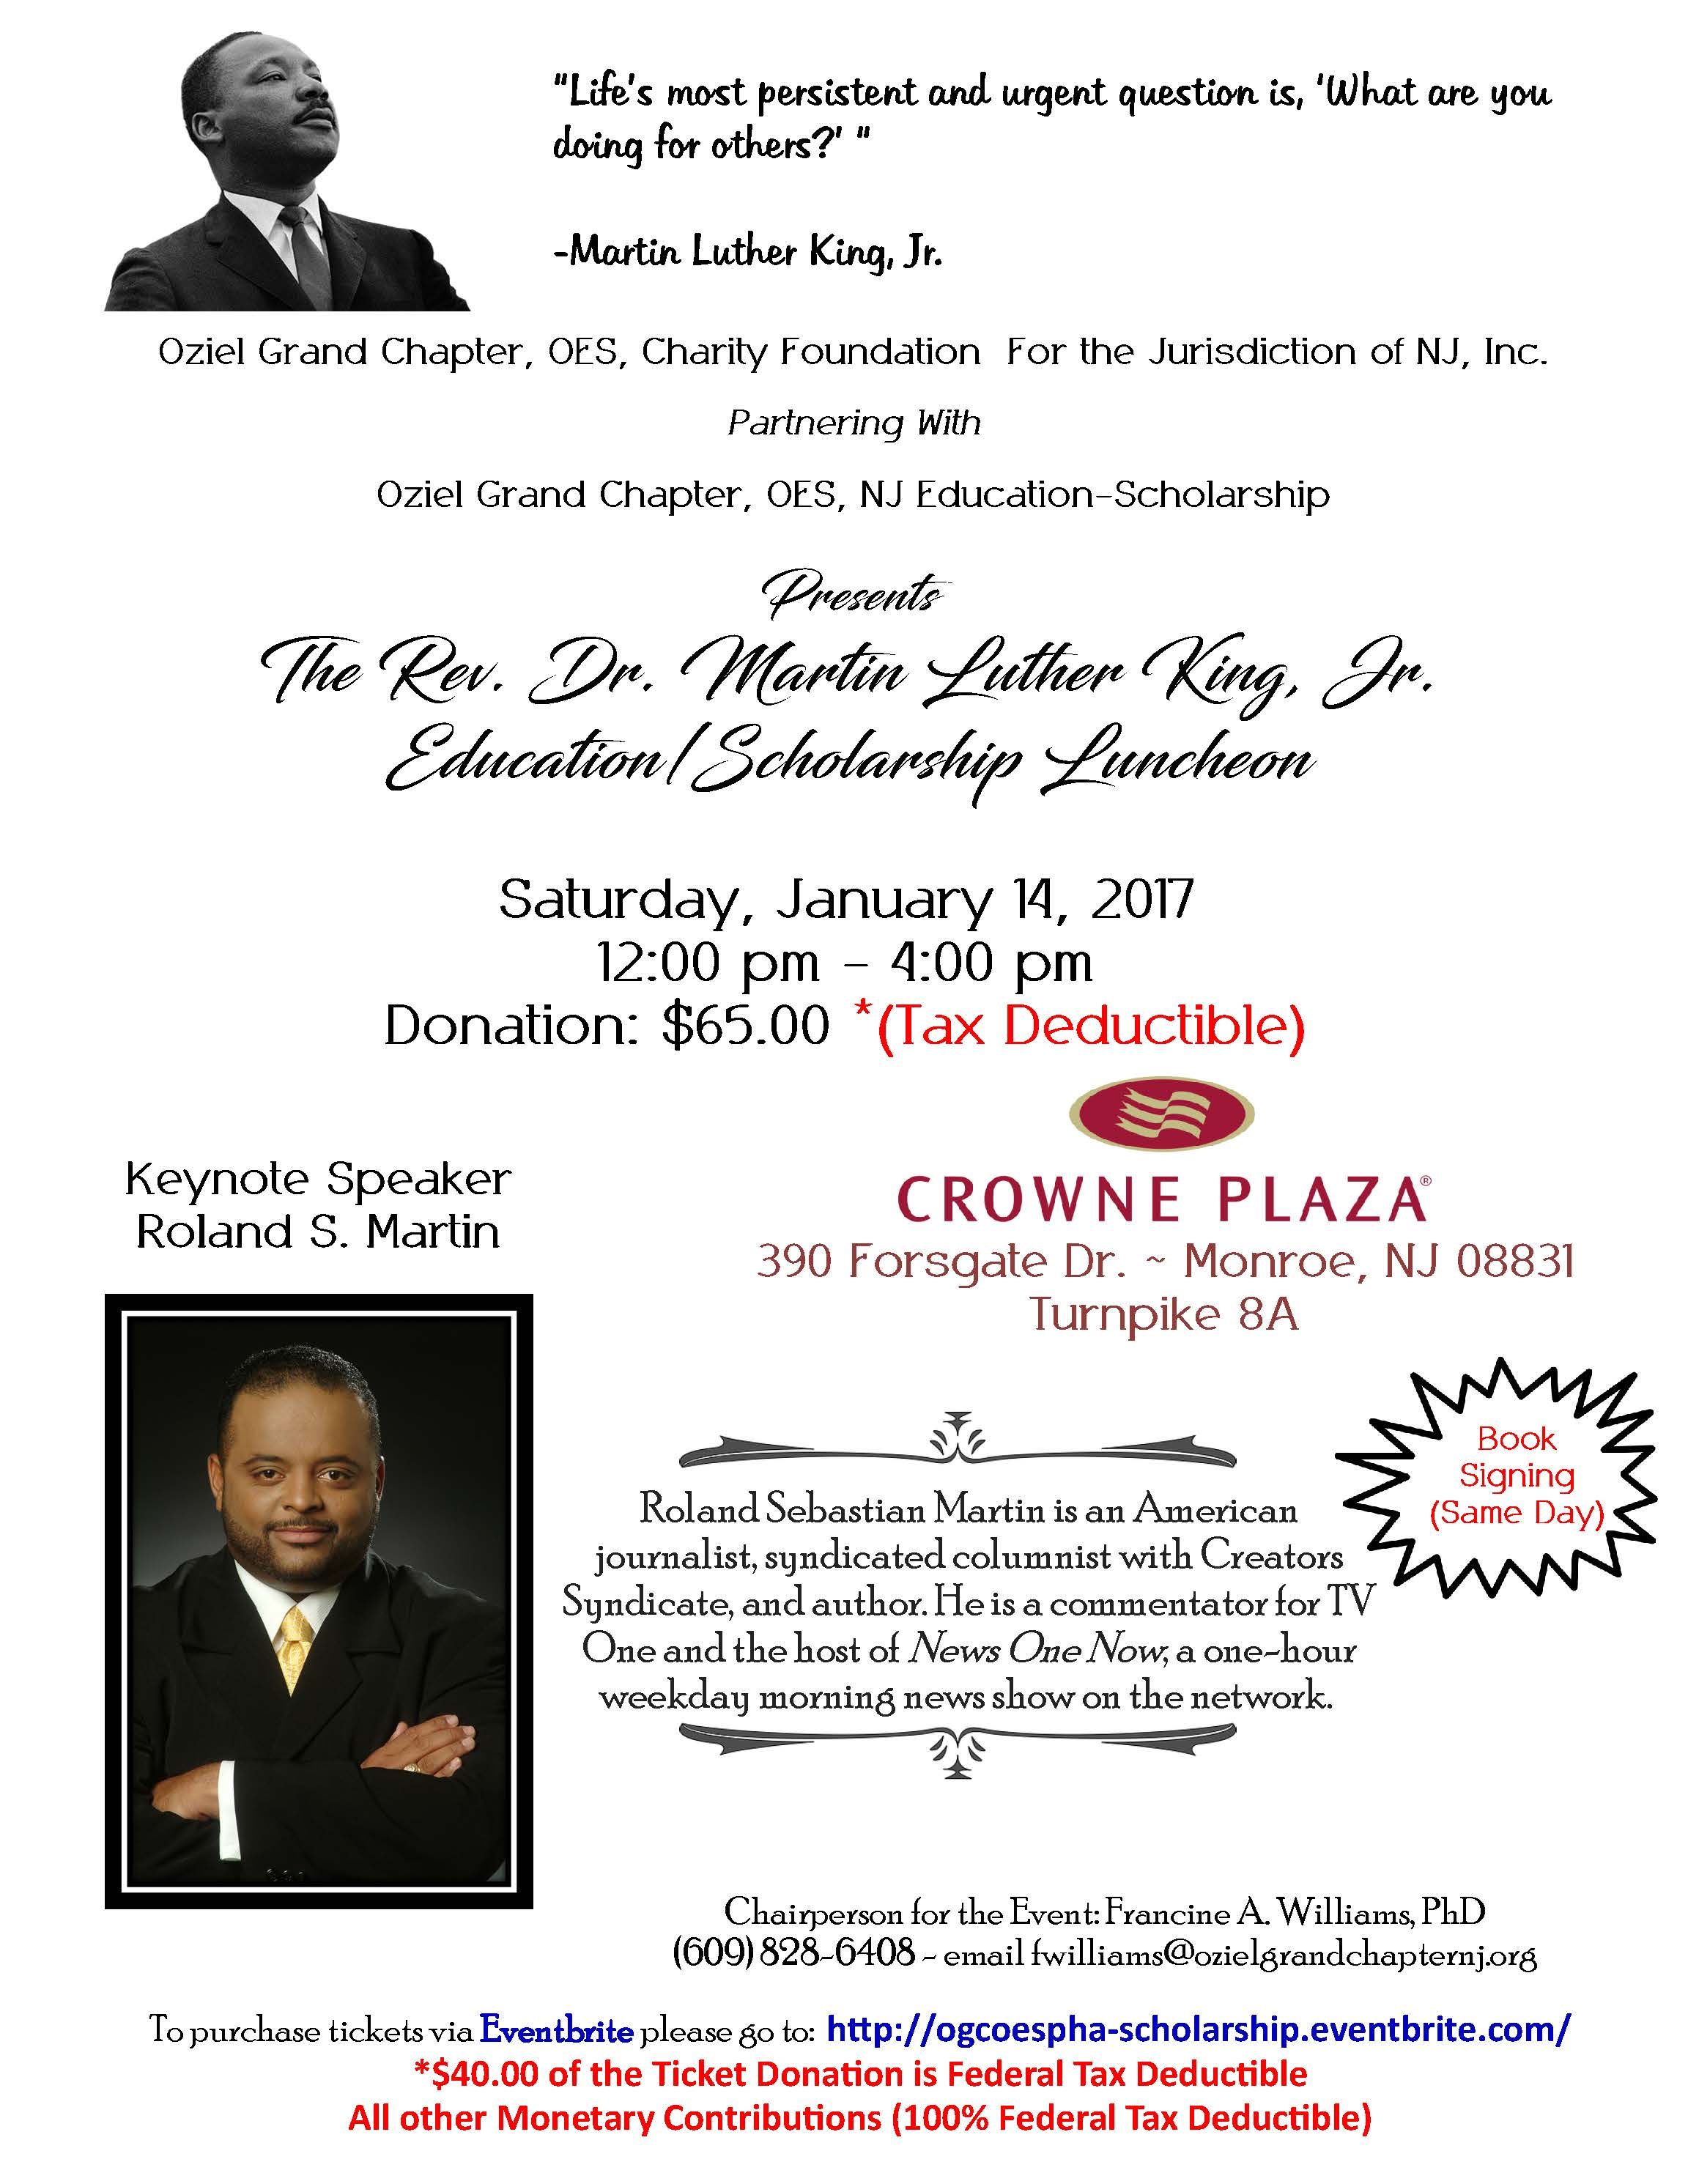 mlk-scholarship-luncheon-flyerbook-signing